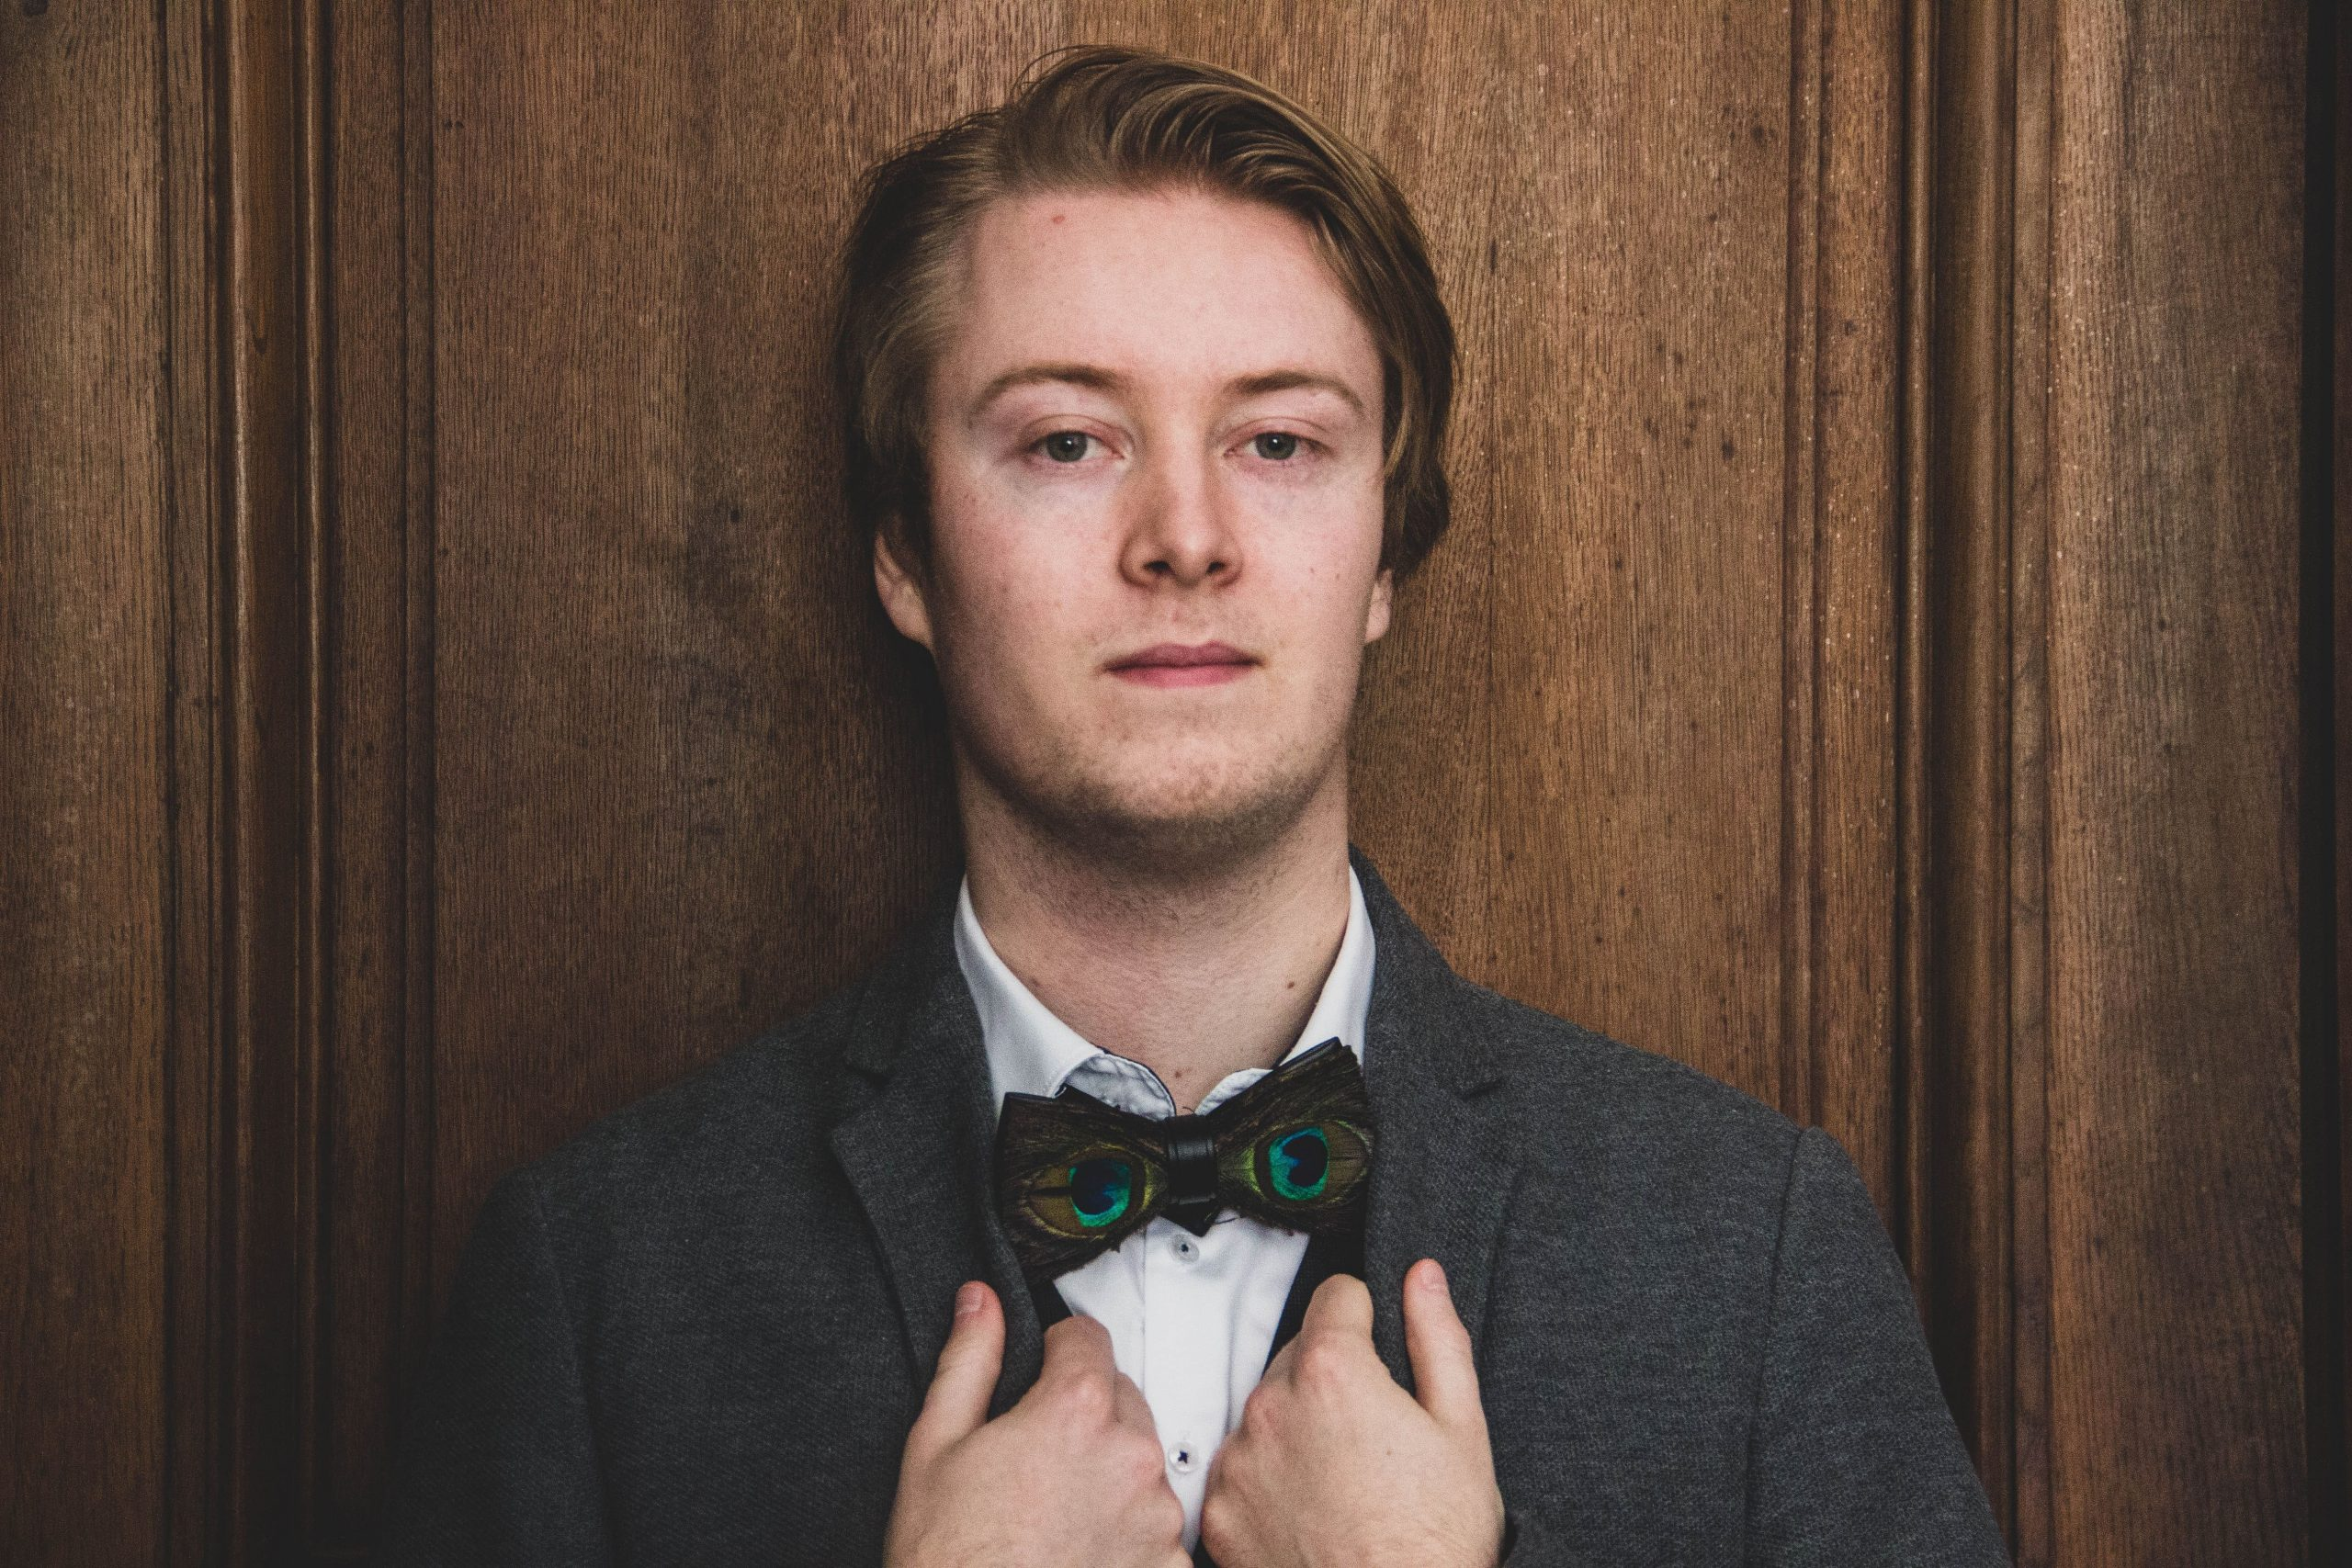 Awesome Bow Ties that Stand Out Unique Bow ties for men Gifter World